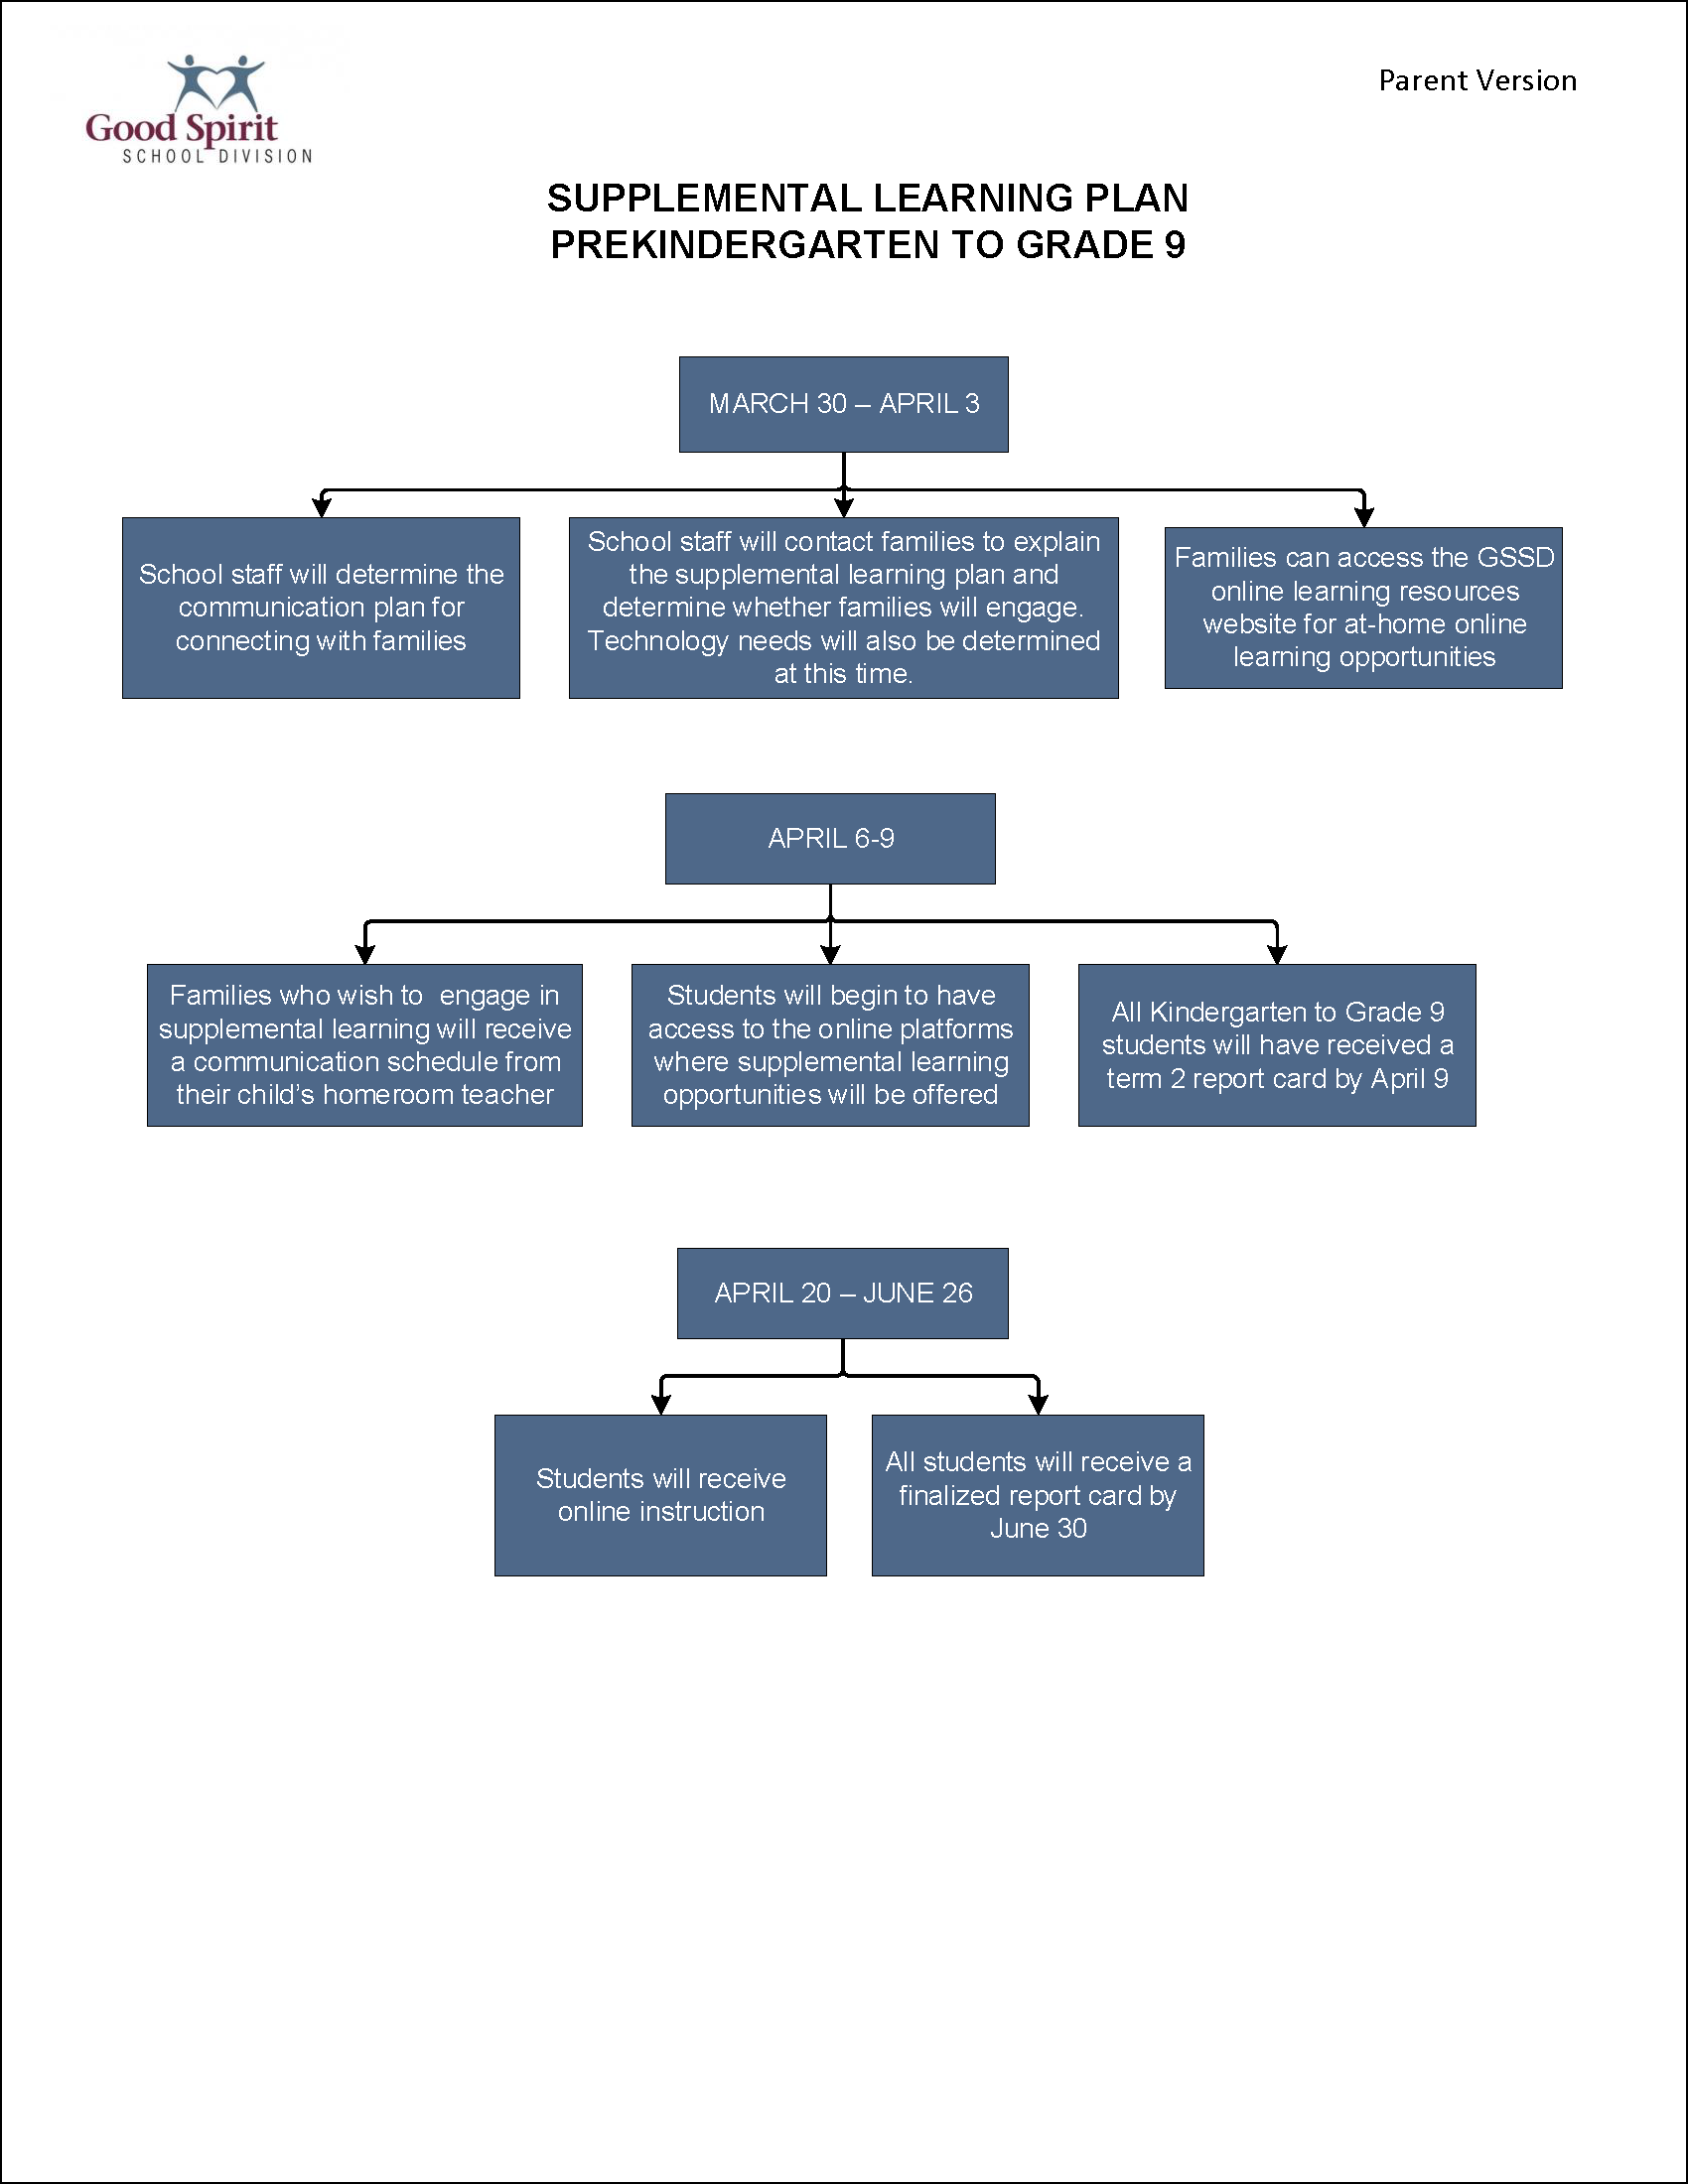 PreK-Gr.9 Supplemental Learning Plan Flowchart.png